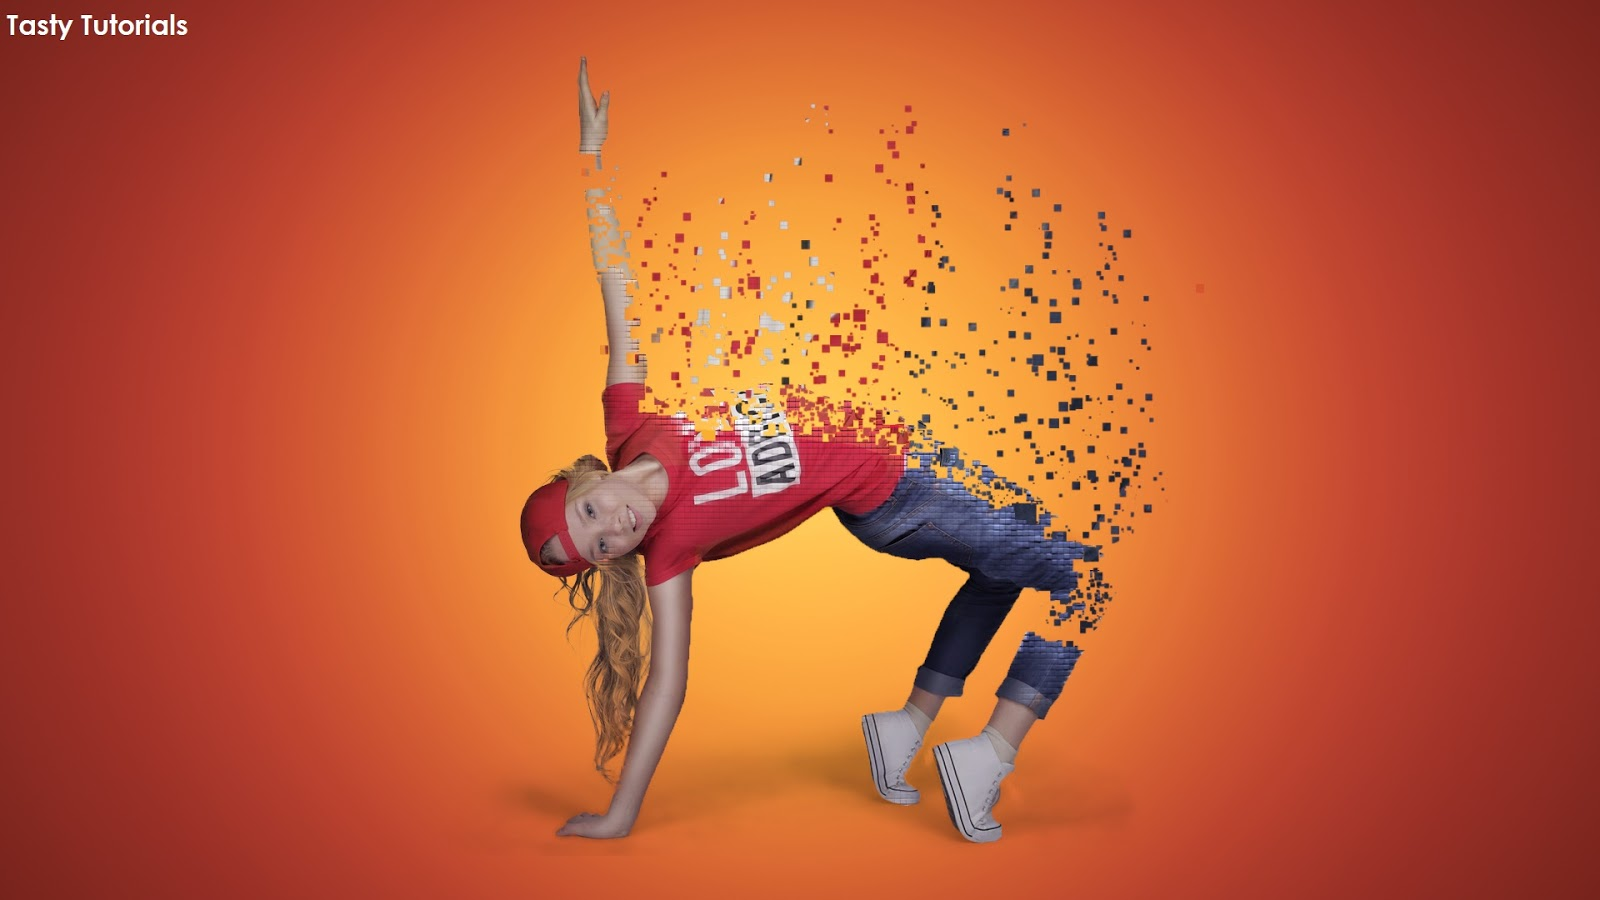 Pixelated Dispersion Effect in Photoshop Complete Tutorial - Tasty